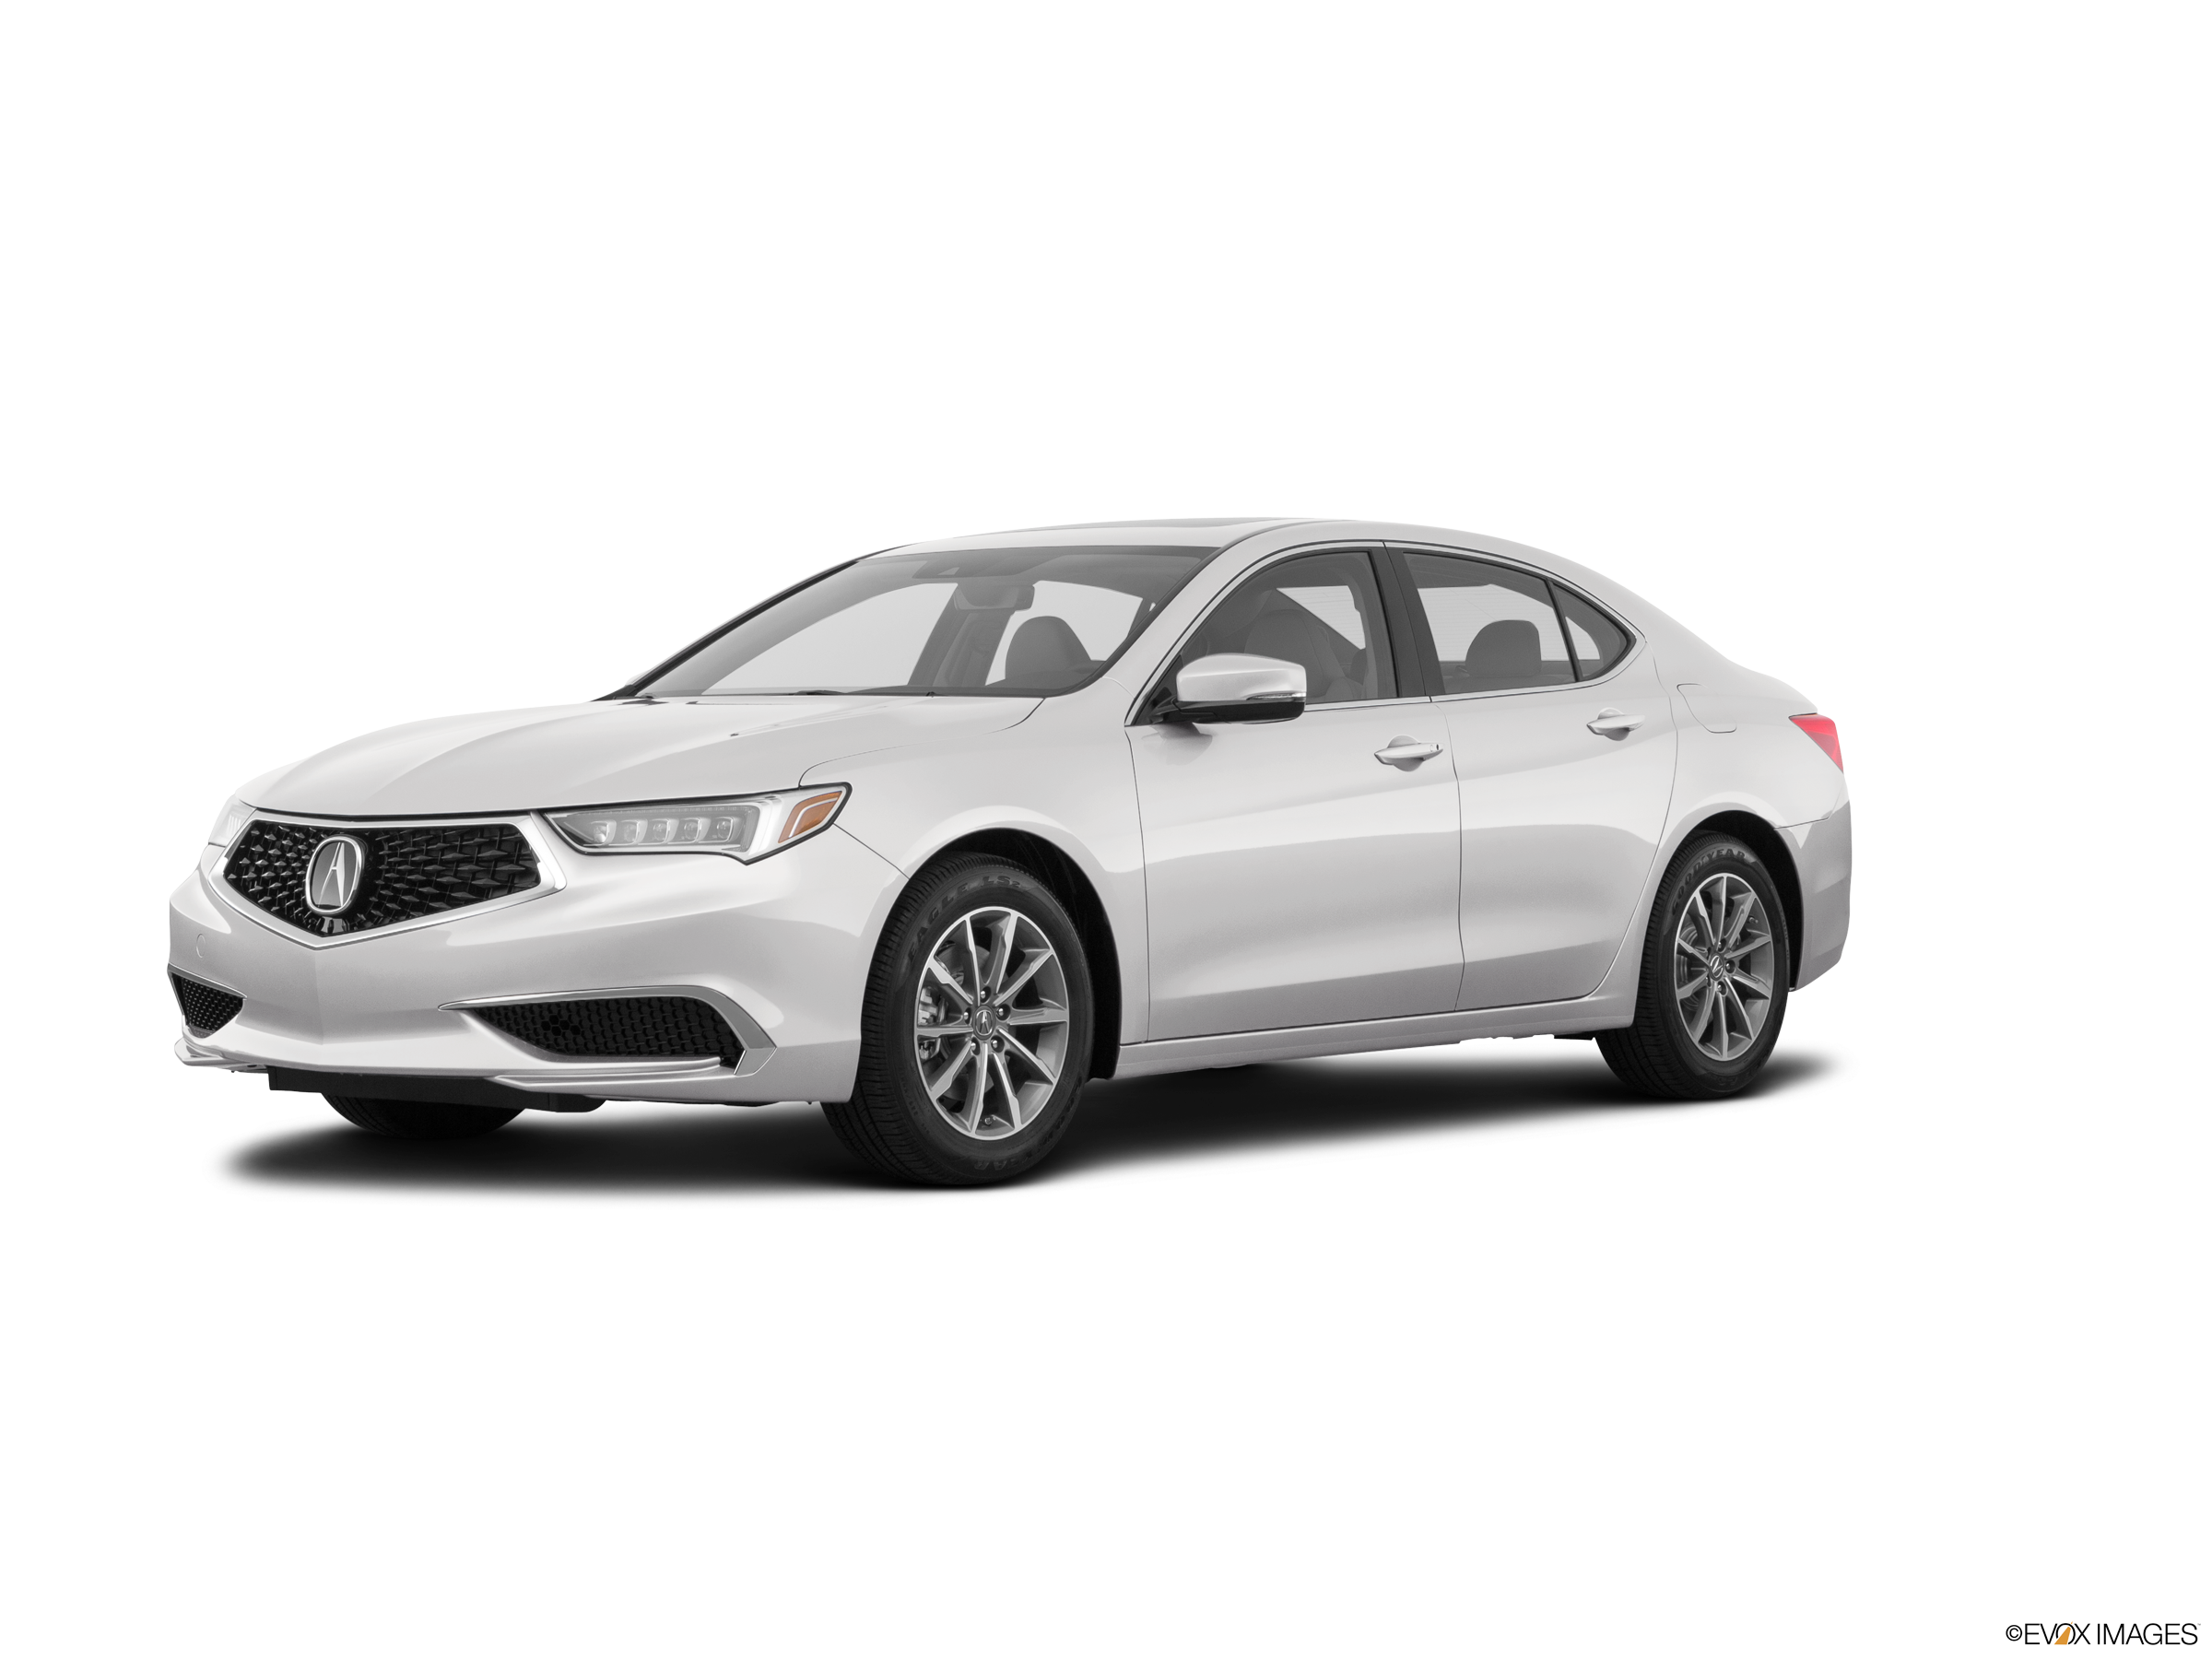 10 Best Luxury Cars Under $35,000 - 2018 Acura TLX